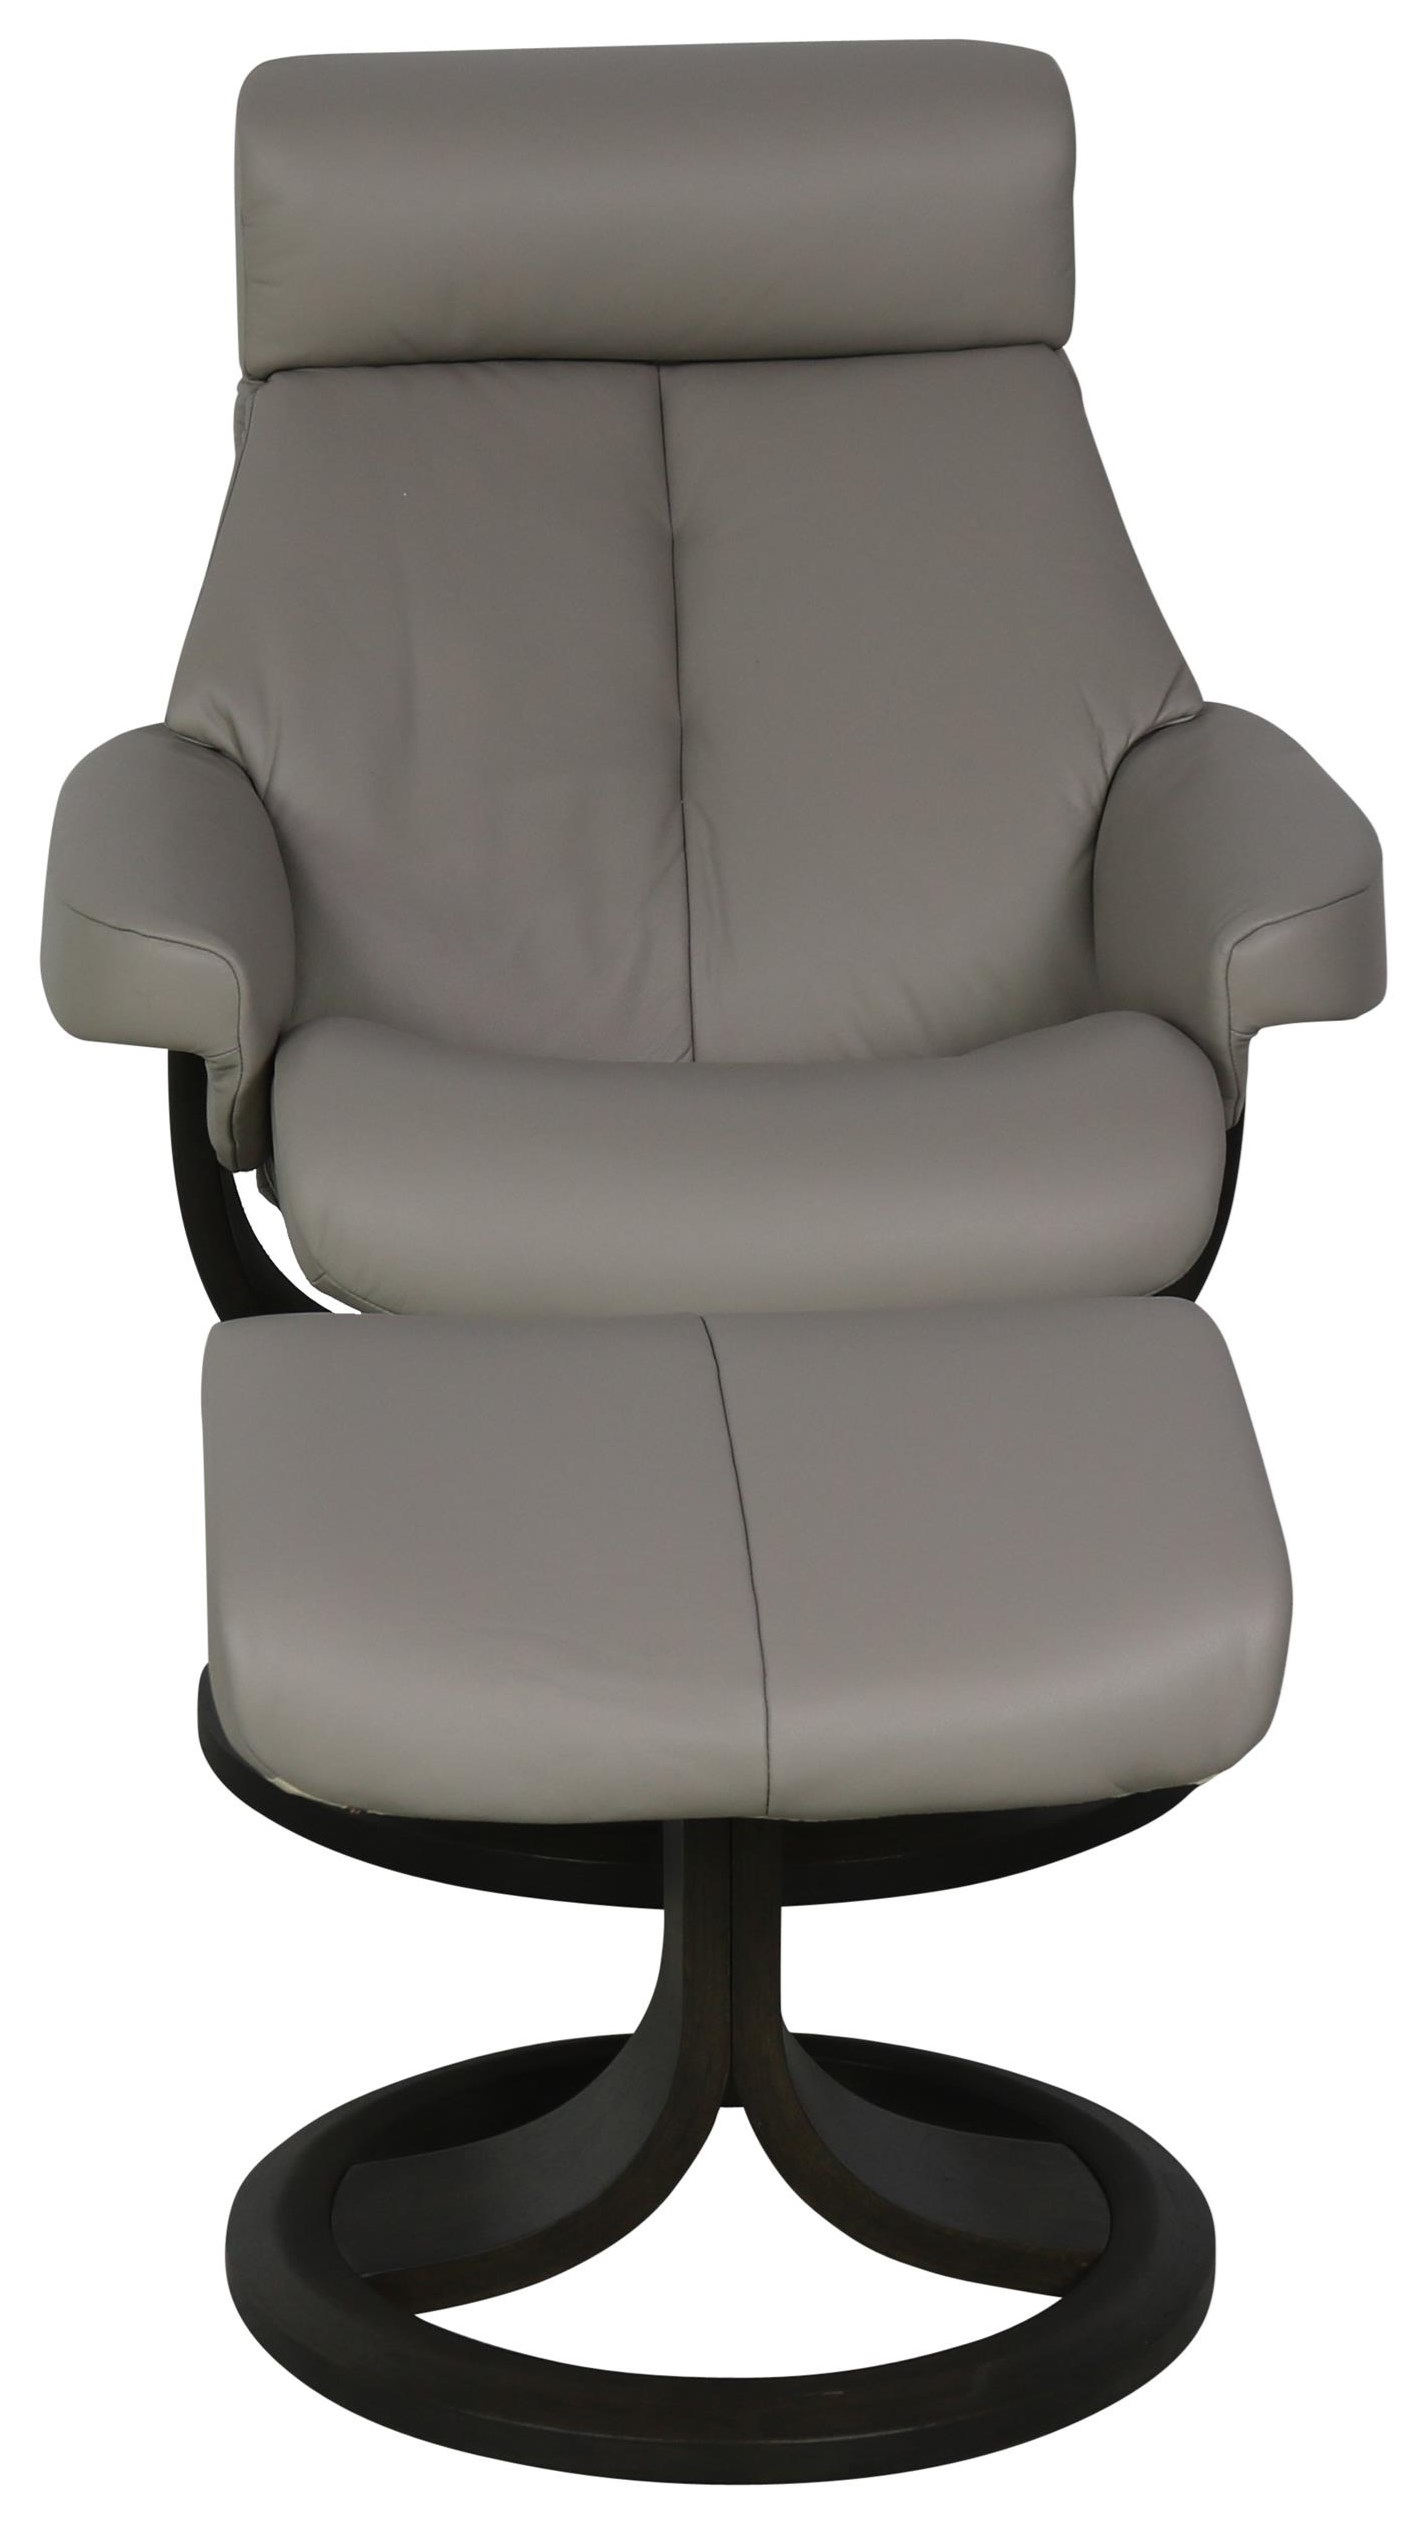 Nordic Chair and Ottoman by IMG Norway at Sprintz Furniture